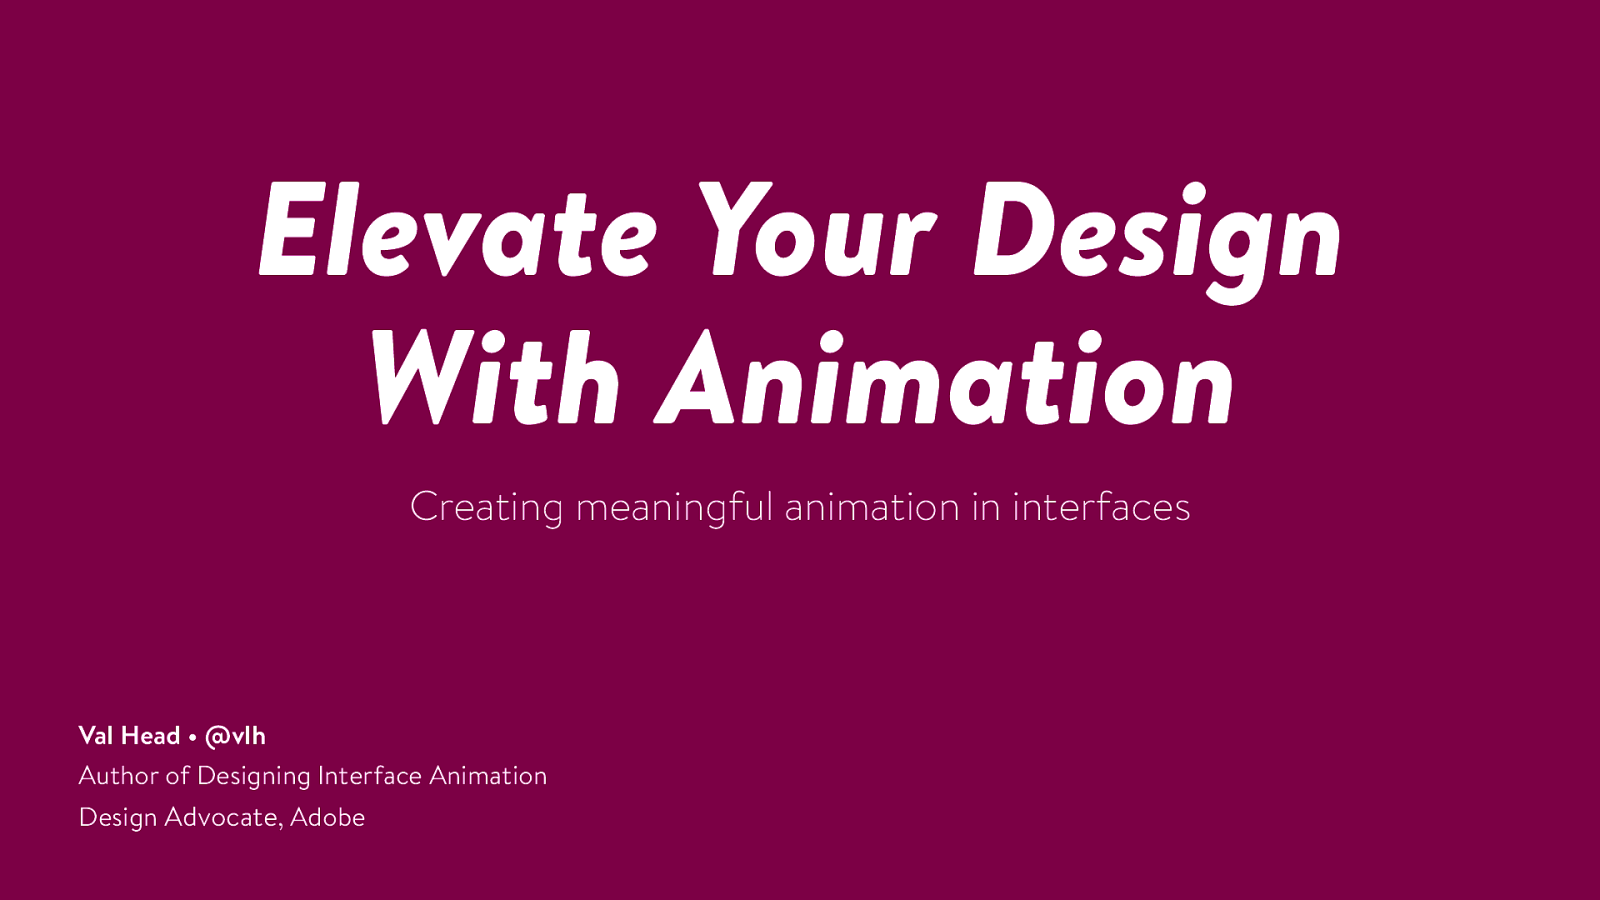 Elevate Your Design 